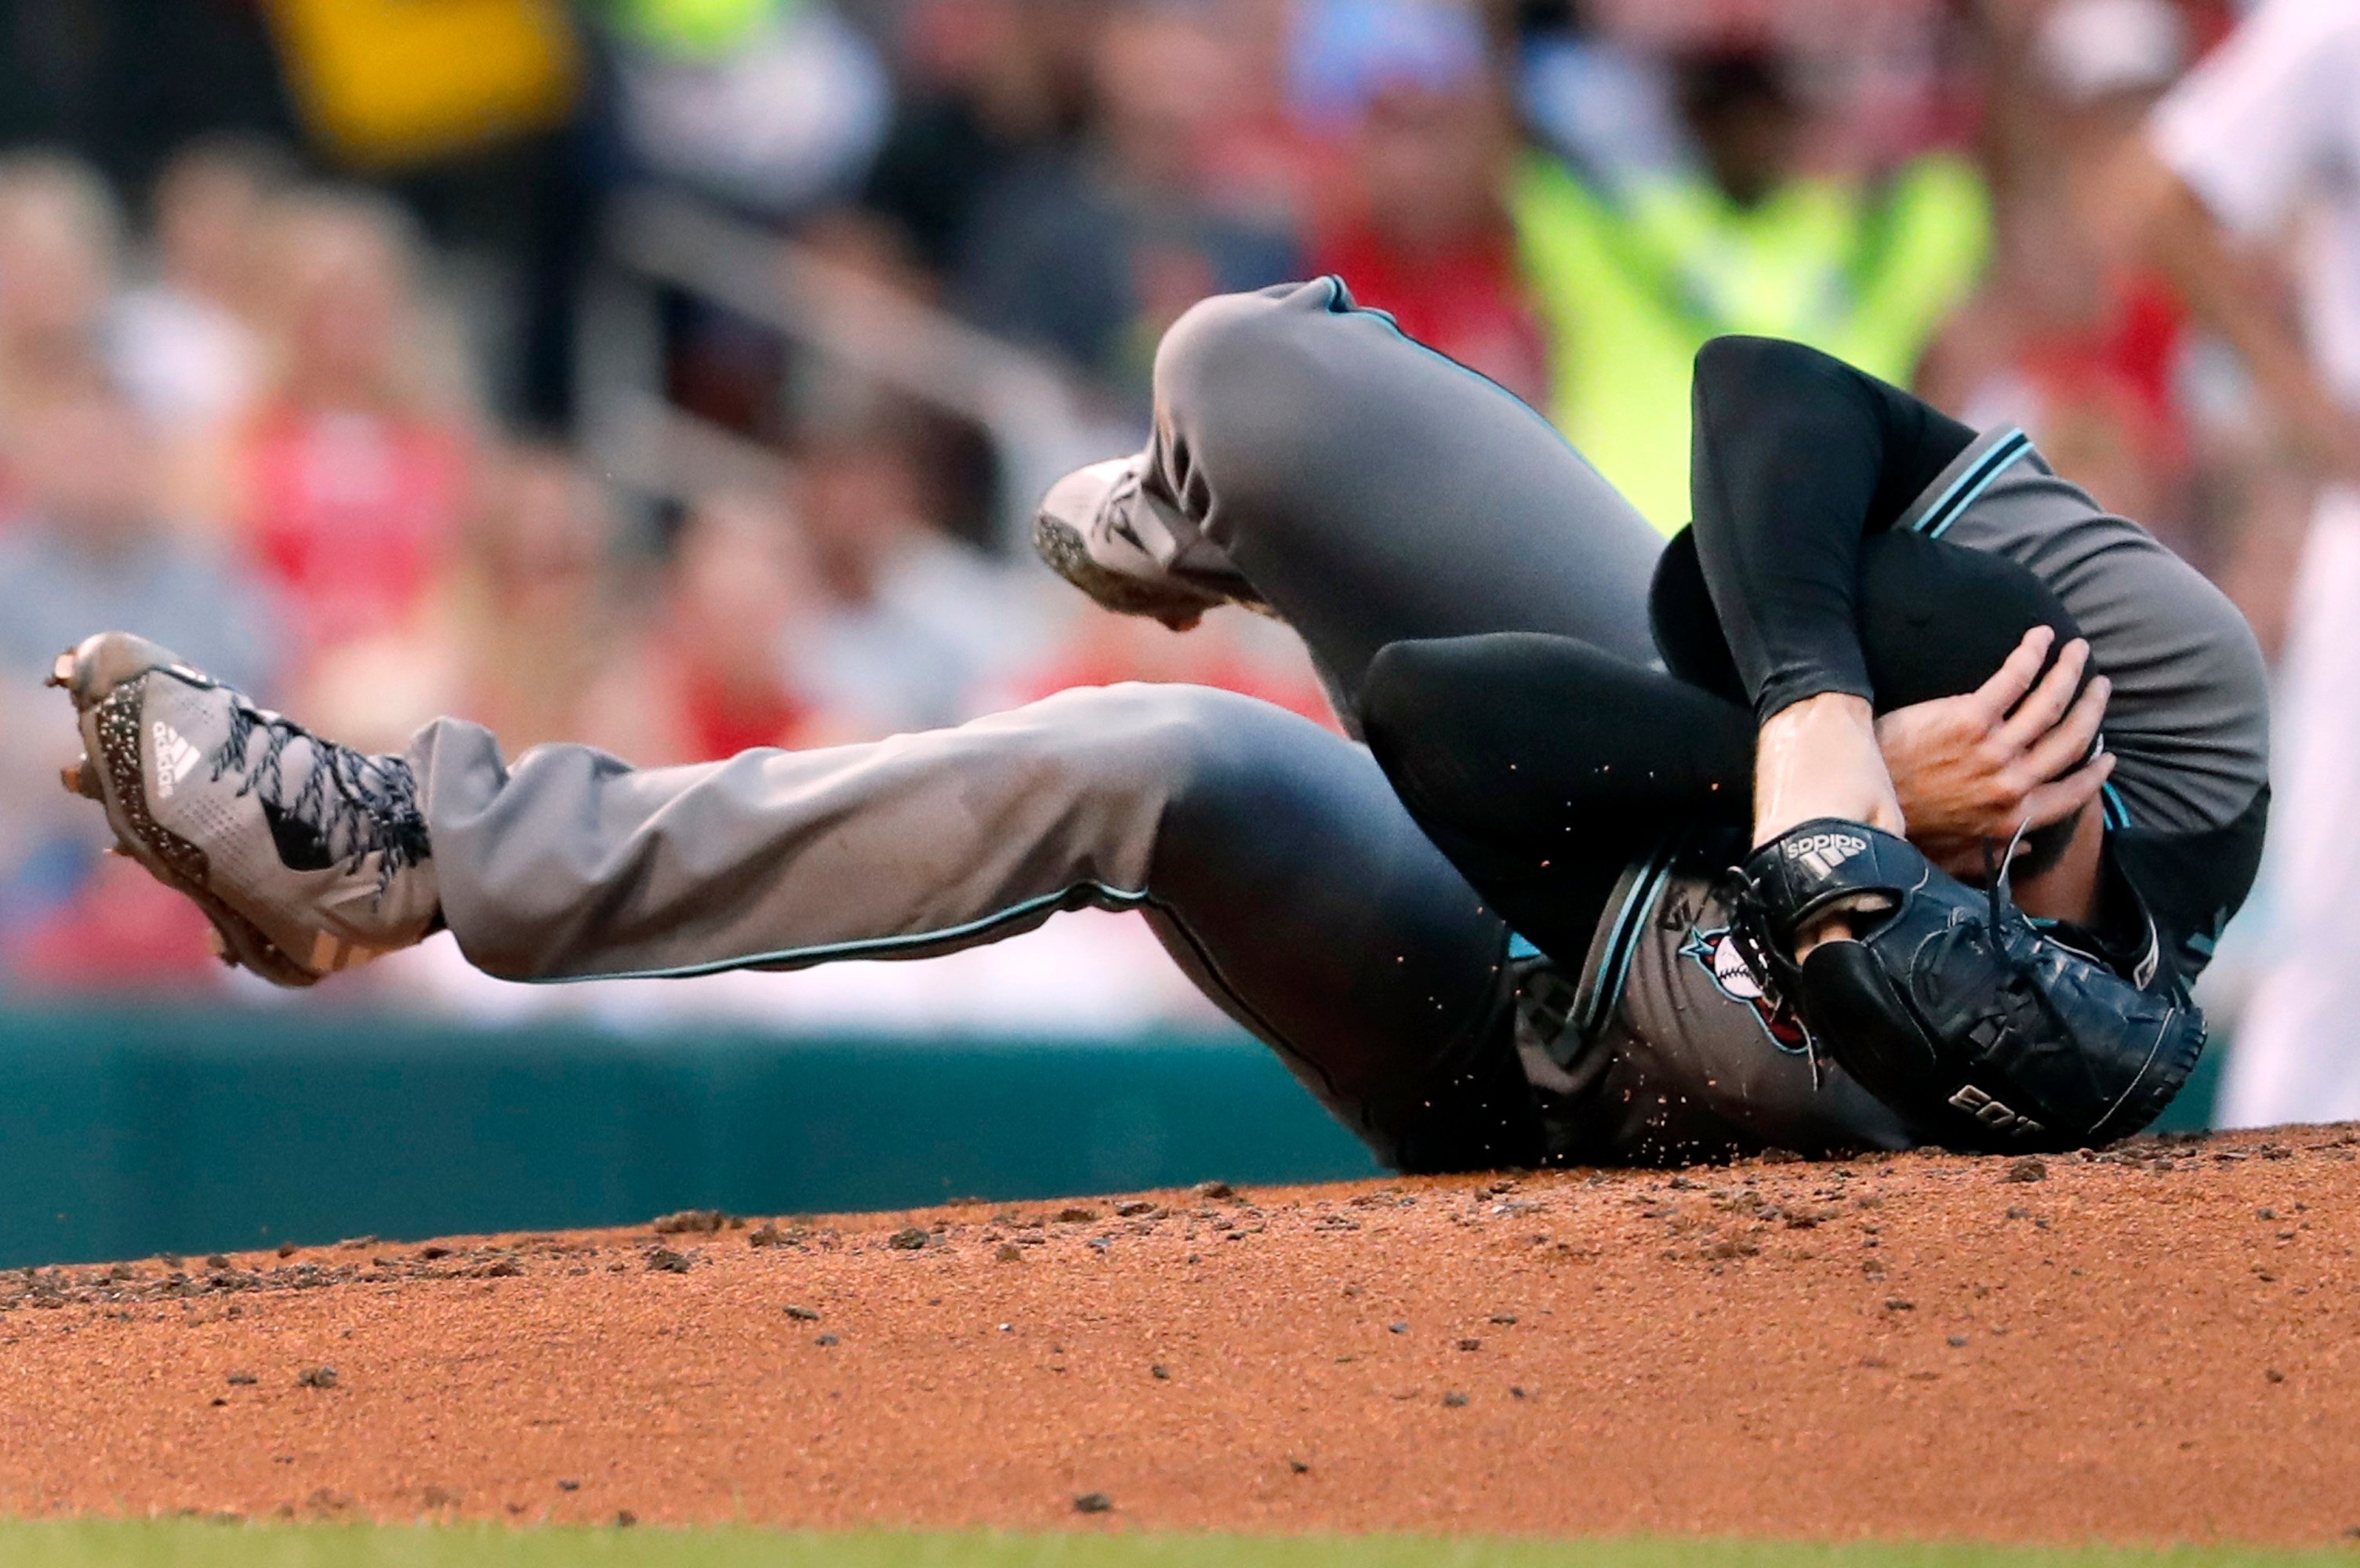 Arizona Diamondbacks starting pitcher Robbie Ray falls to the ground after being hit on the head by a ball back to the mound (AP Photo/Jeff Roberson)